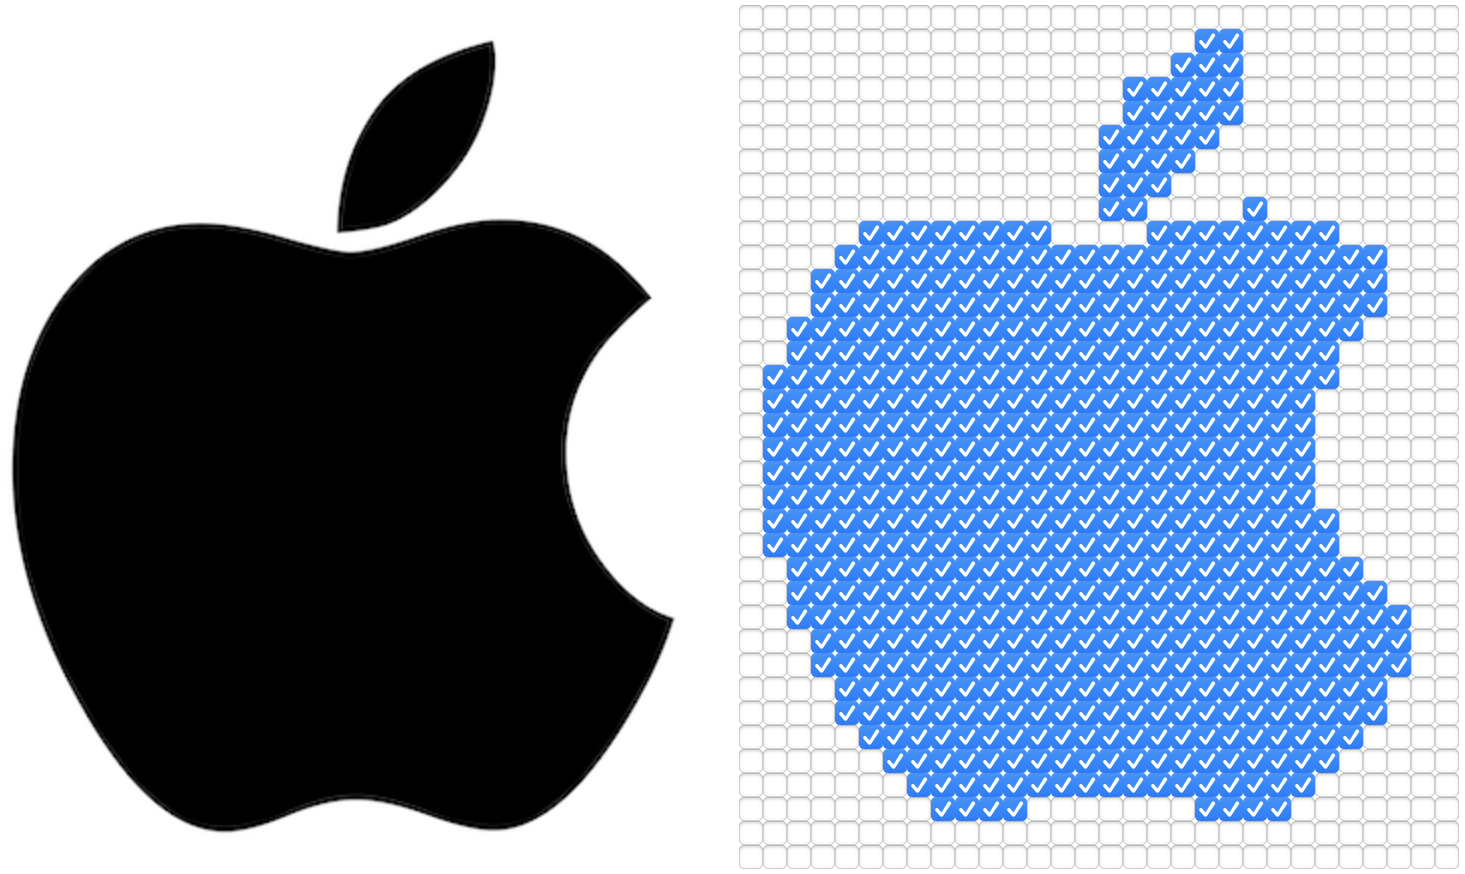 The Apple logo displayed side-by-side with an html checkbox version